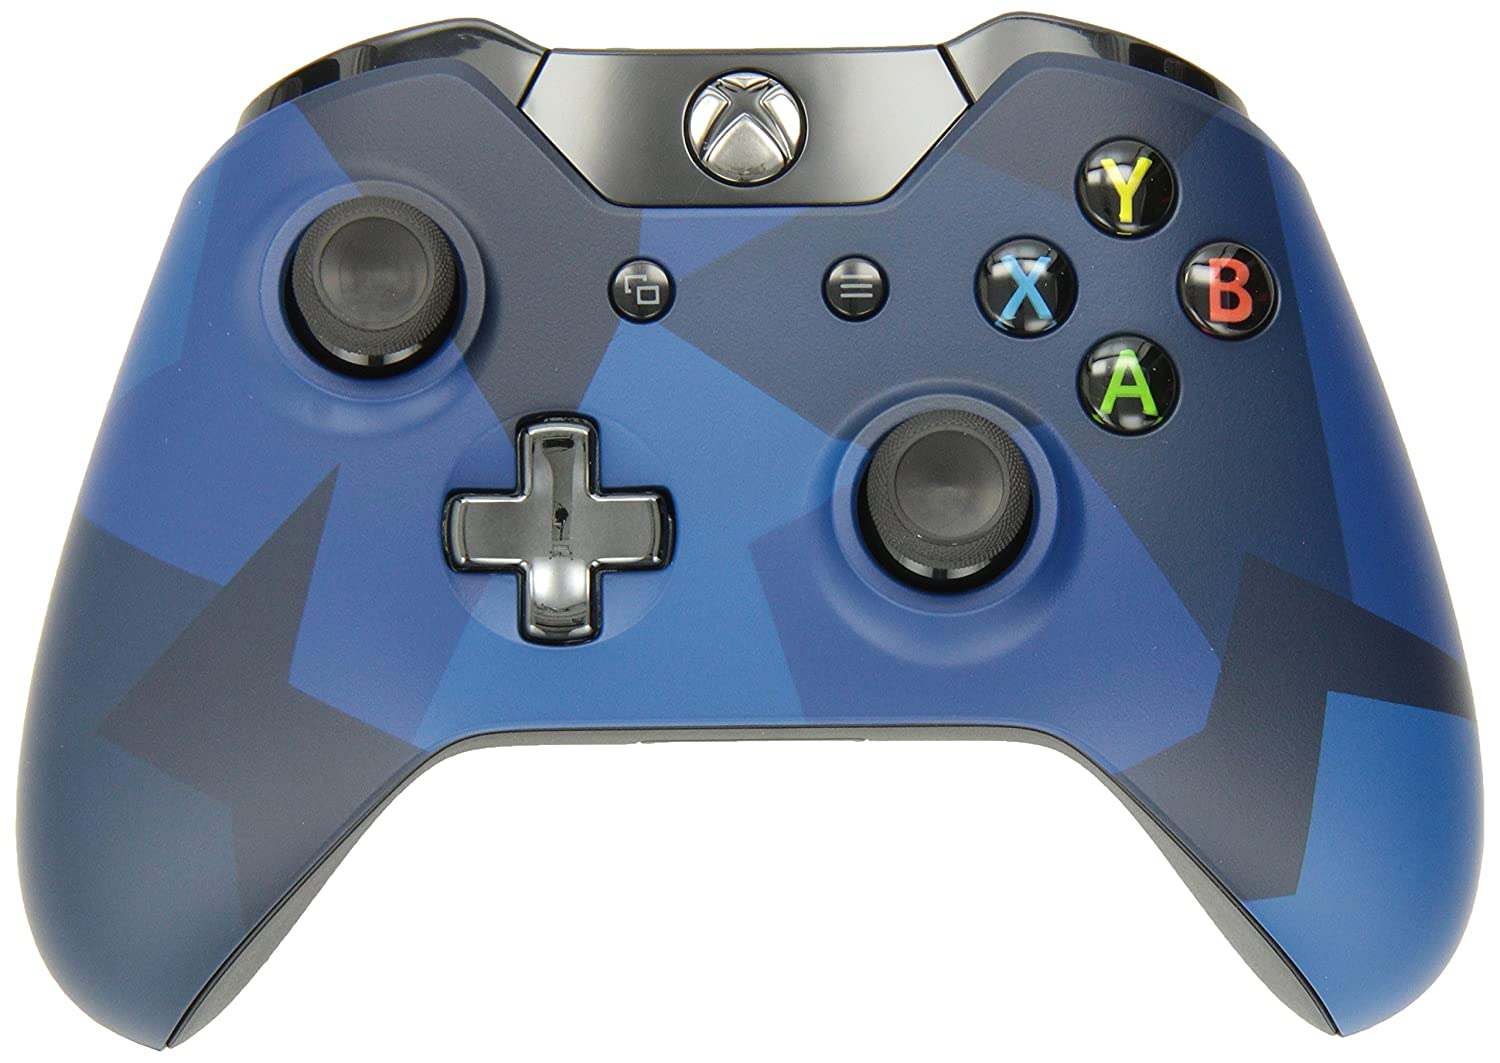 Top 10 Best Xbox One Controllers Reviews 2016-2017 on Flipboard